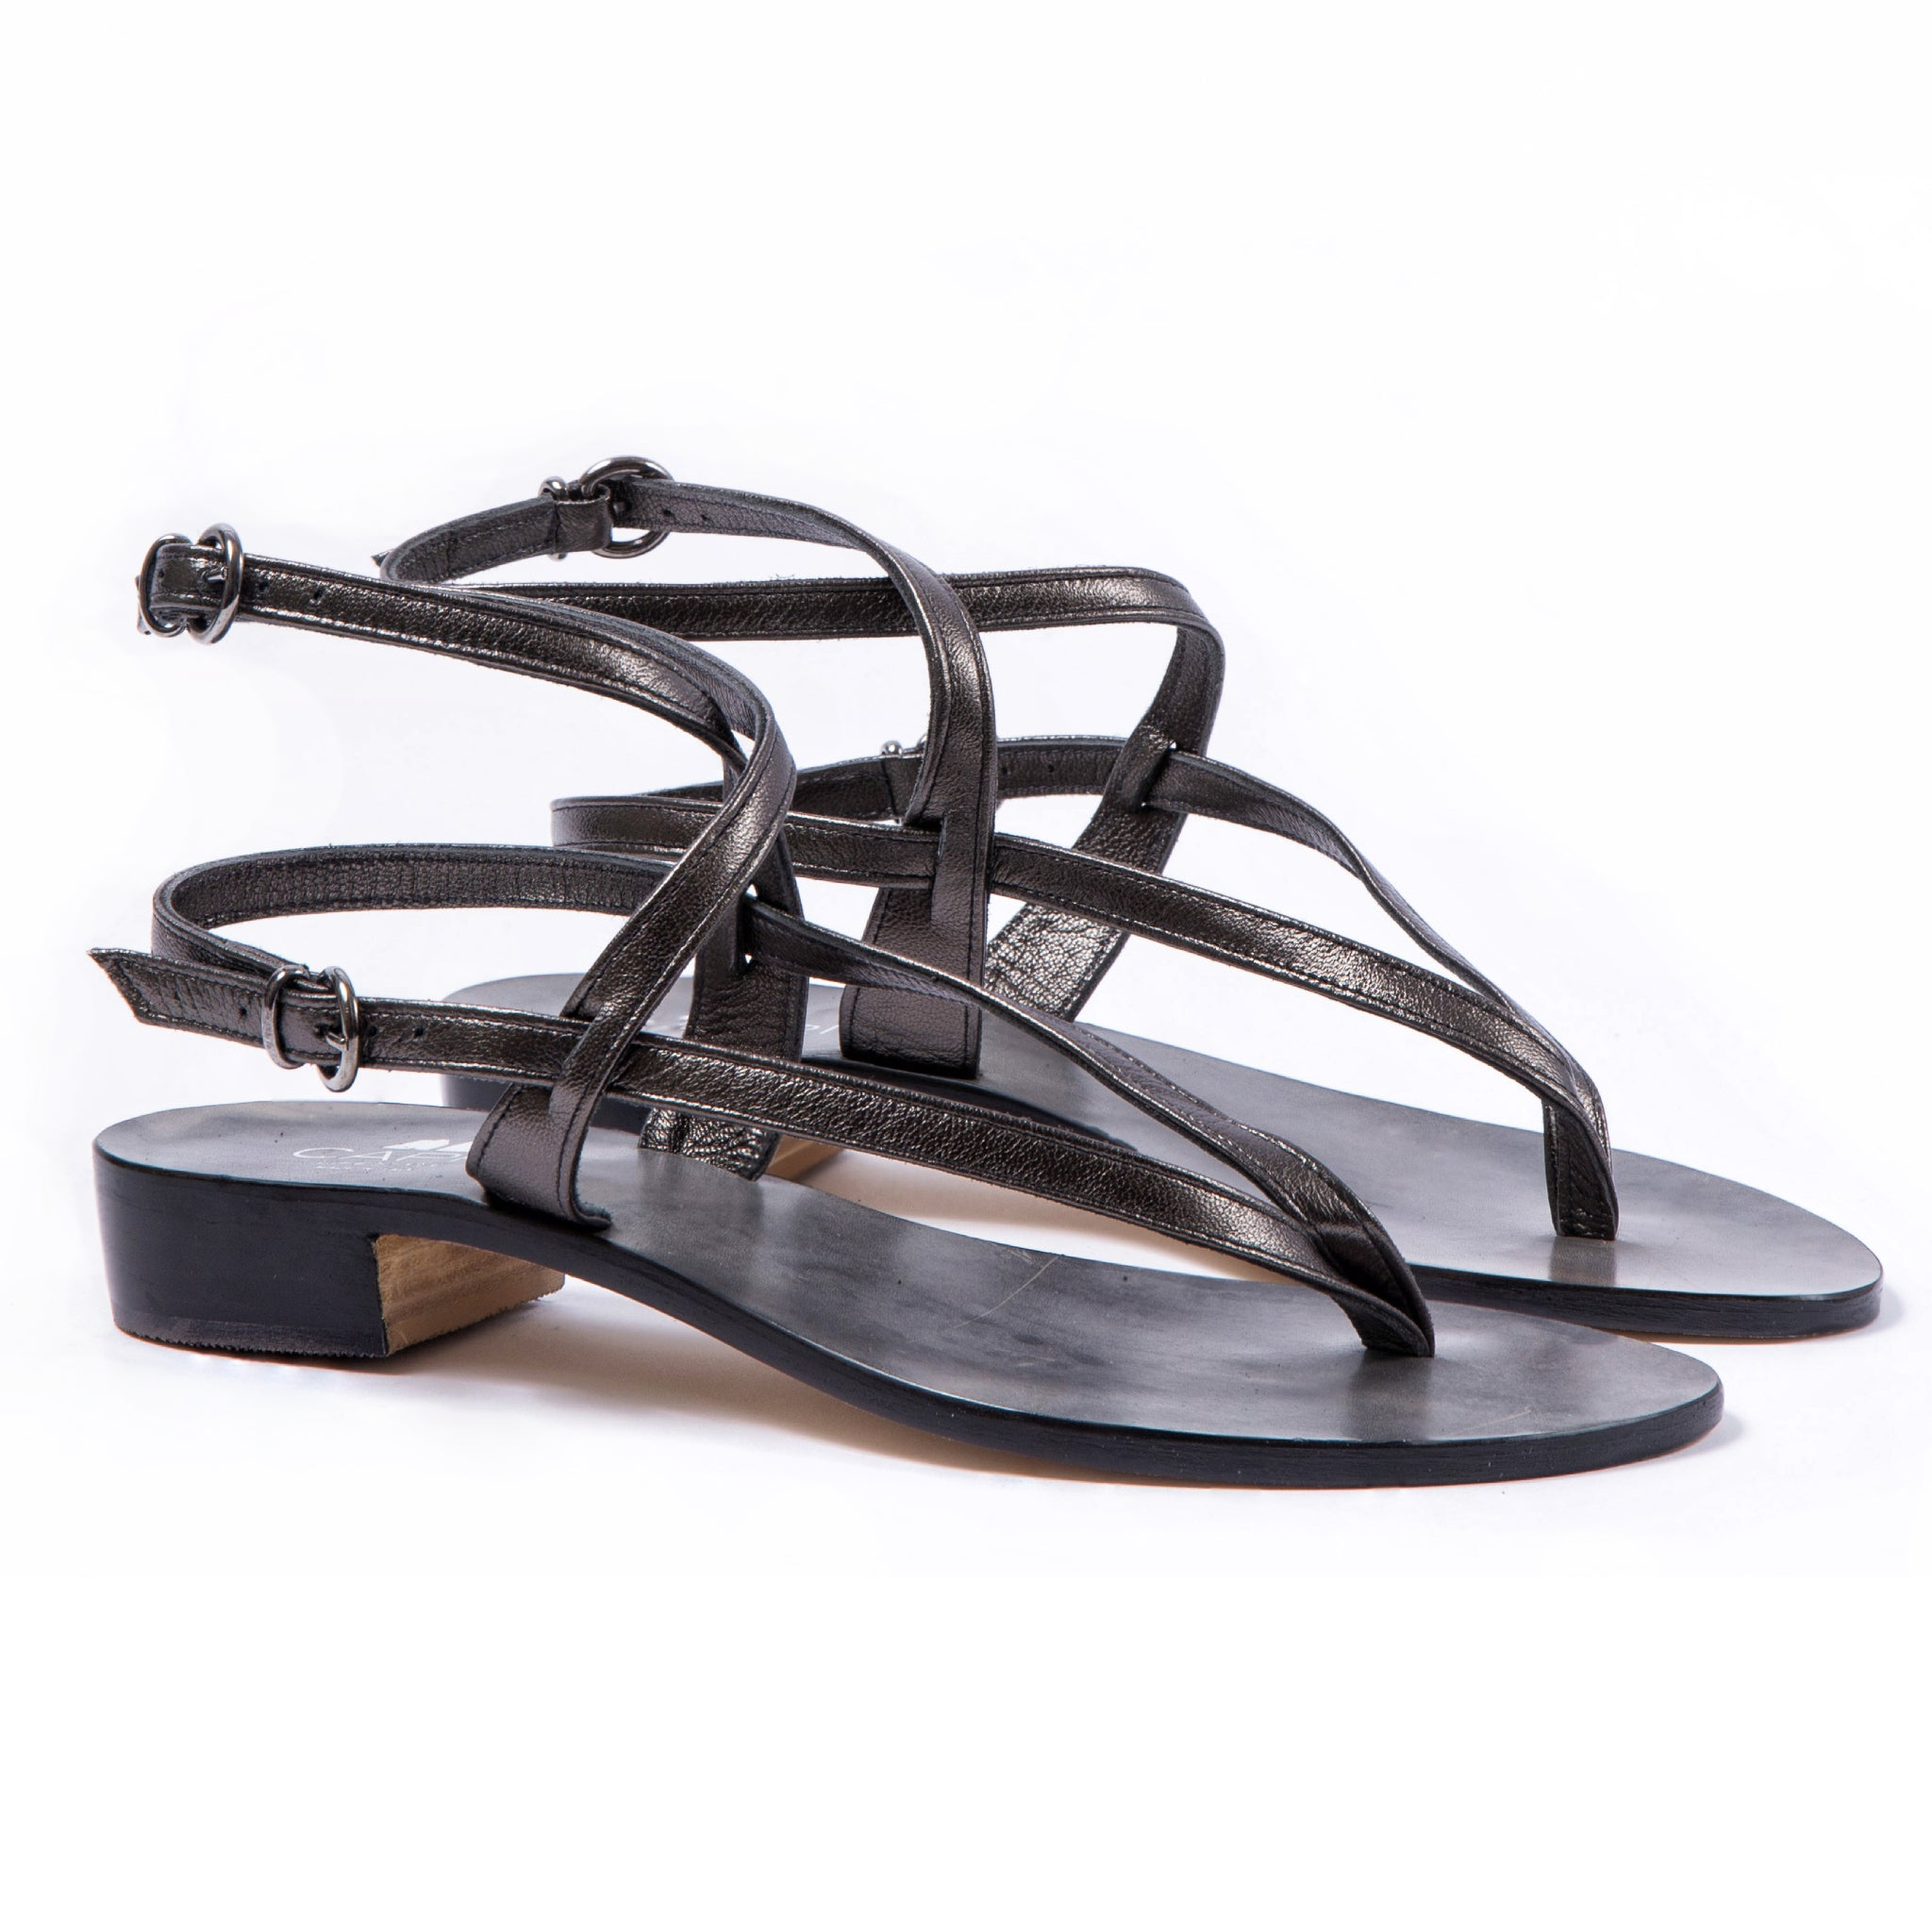 Sorrento - Flat Shoes Strappy